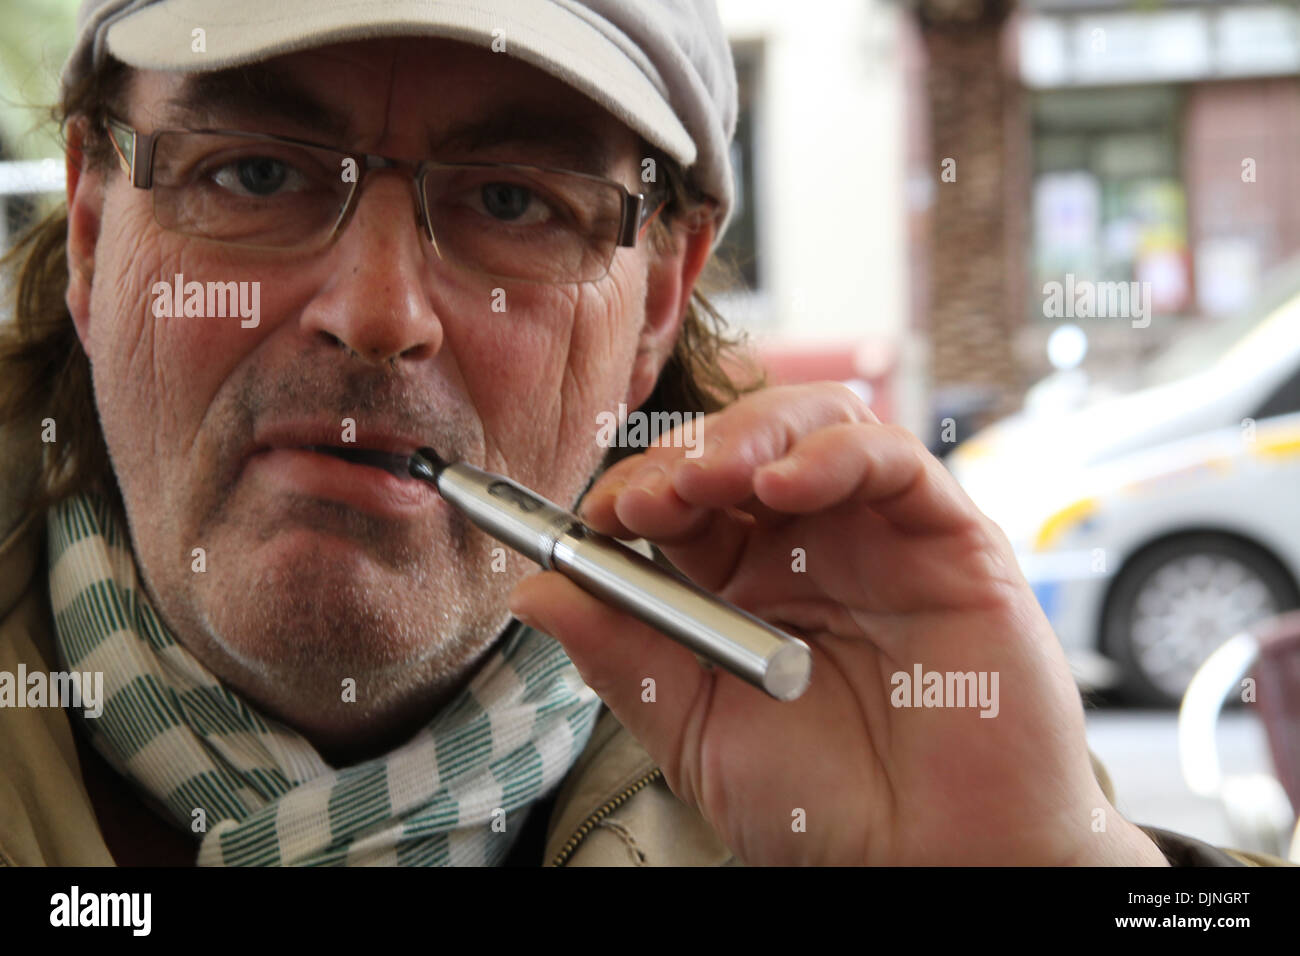 Older Man Smoking e cigarette - Stock Image